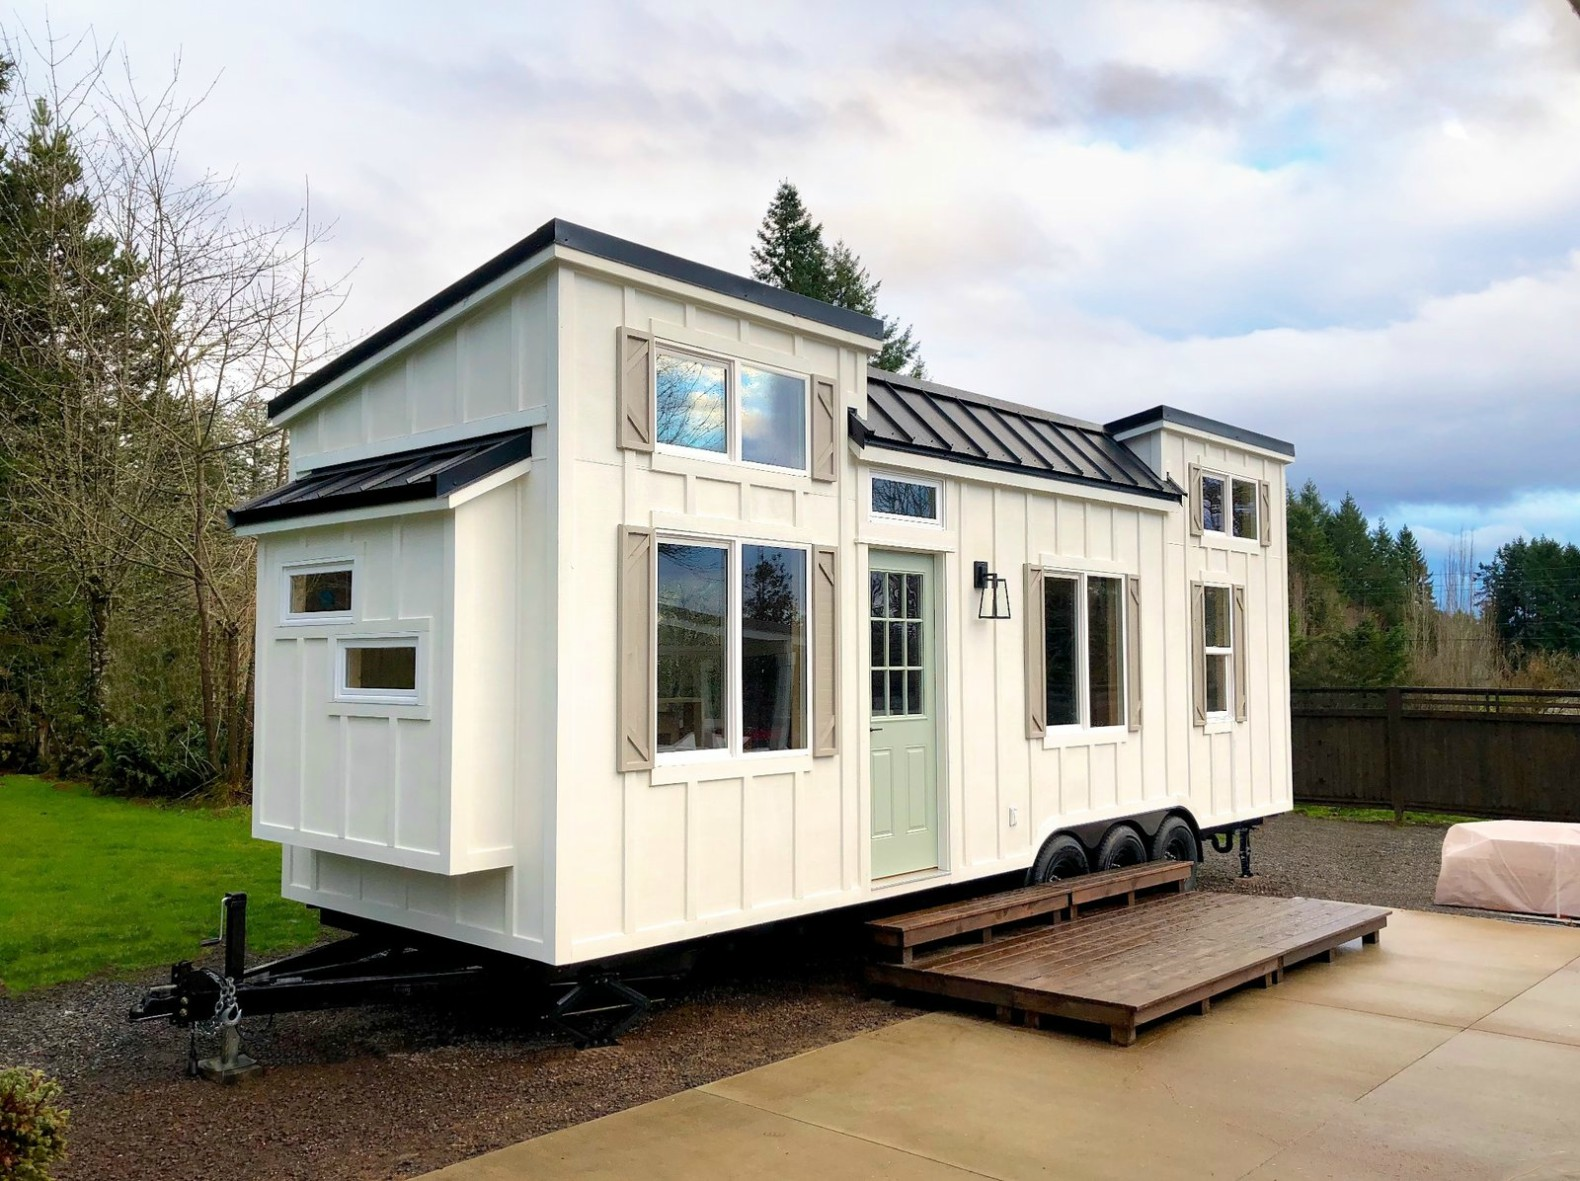 Tiny House: all you need to know about mobile and ecological homes before getting started